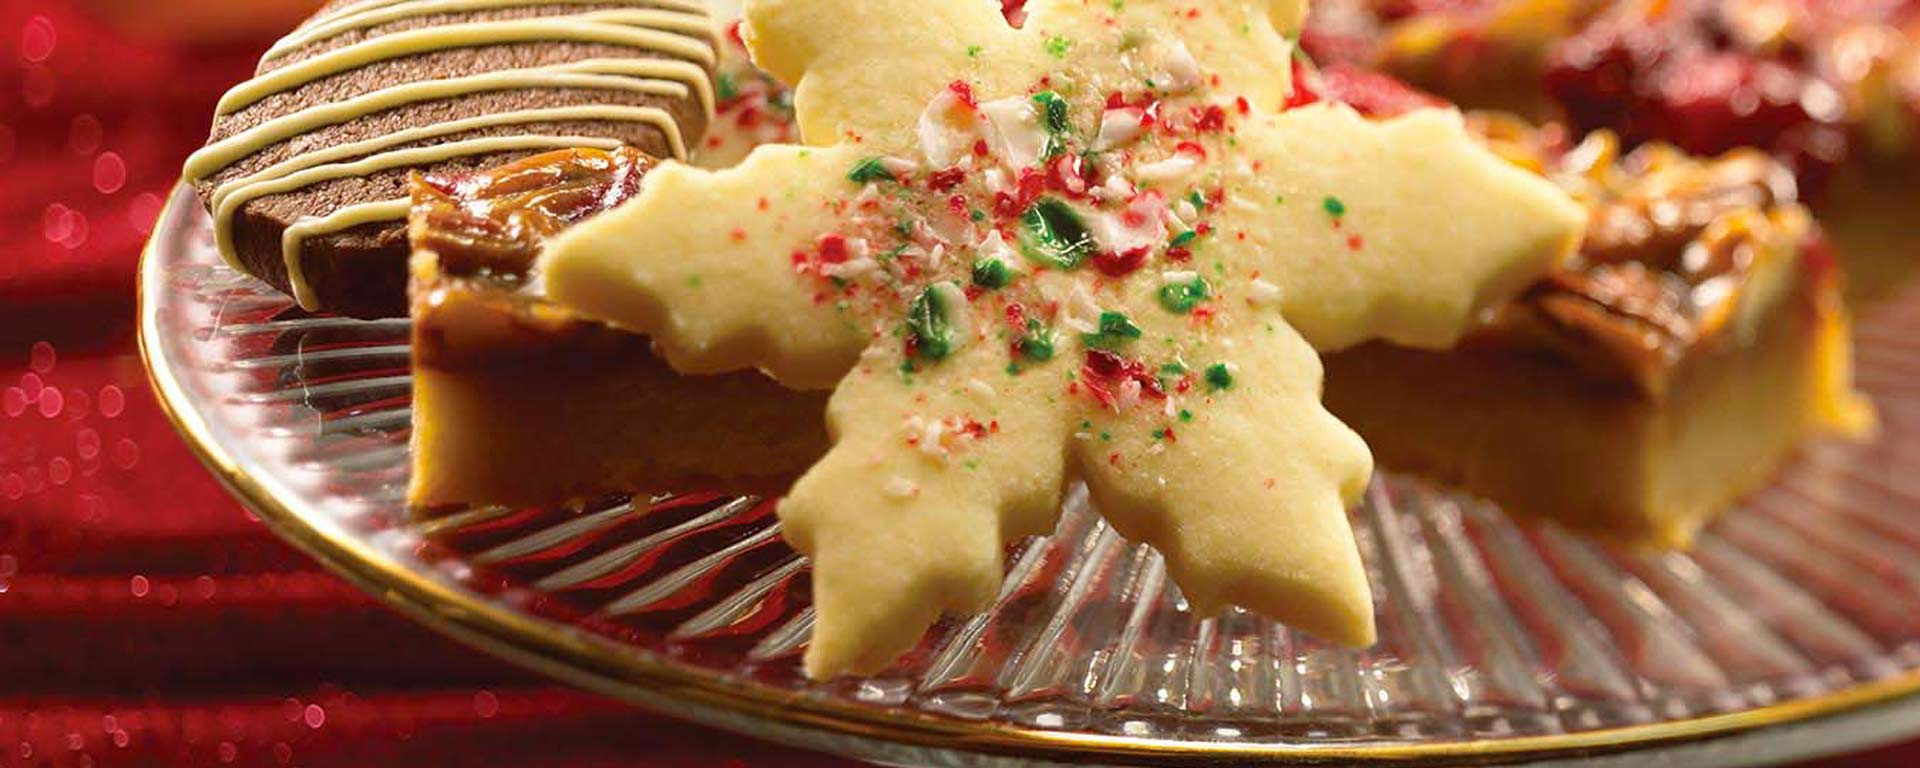 Photo for - Candy Cane Shortbread